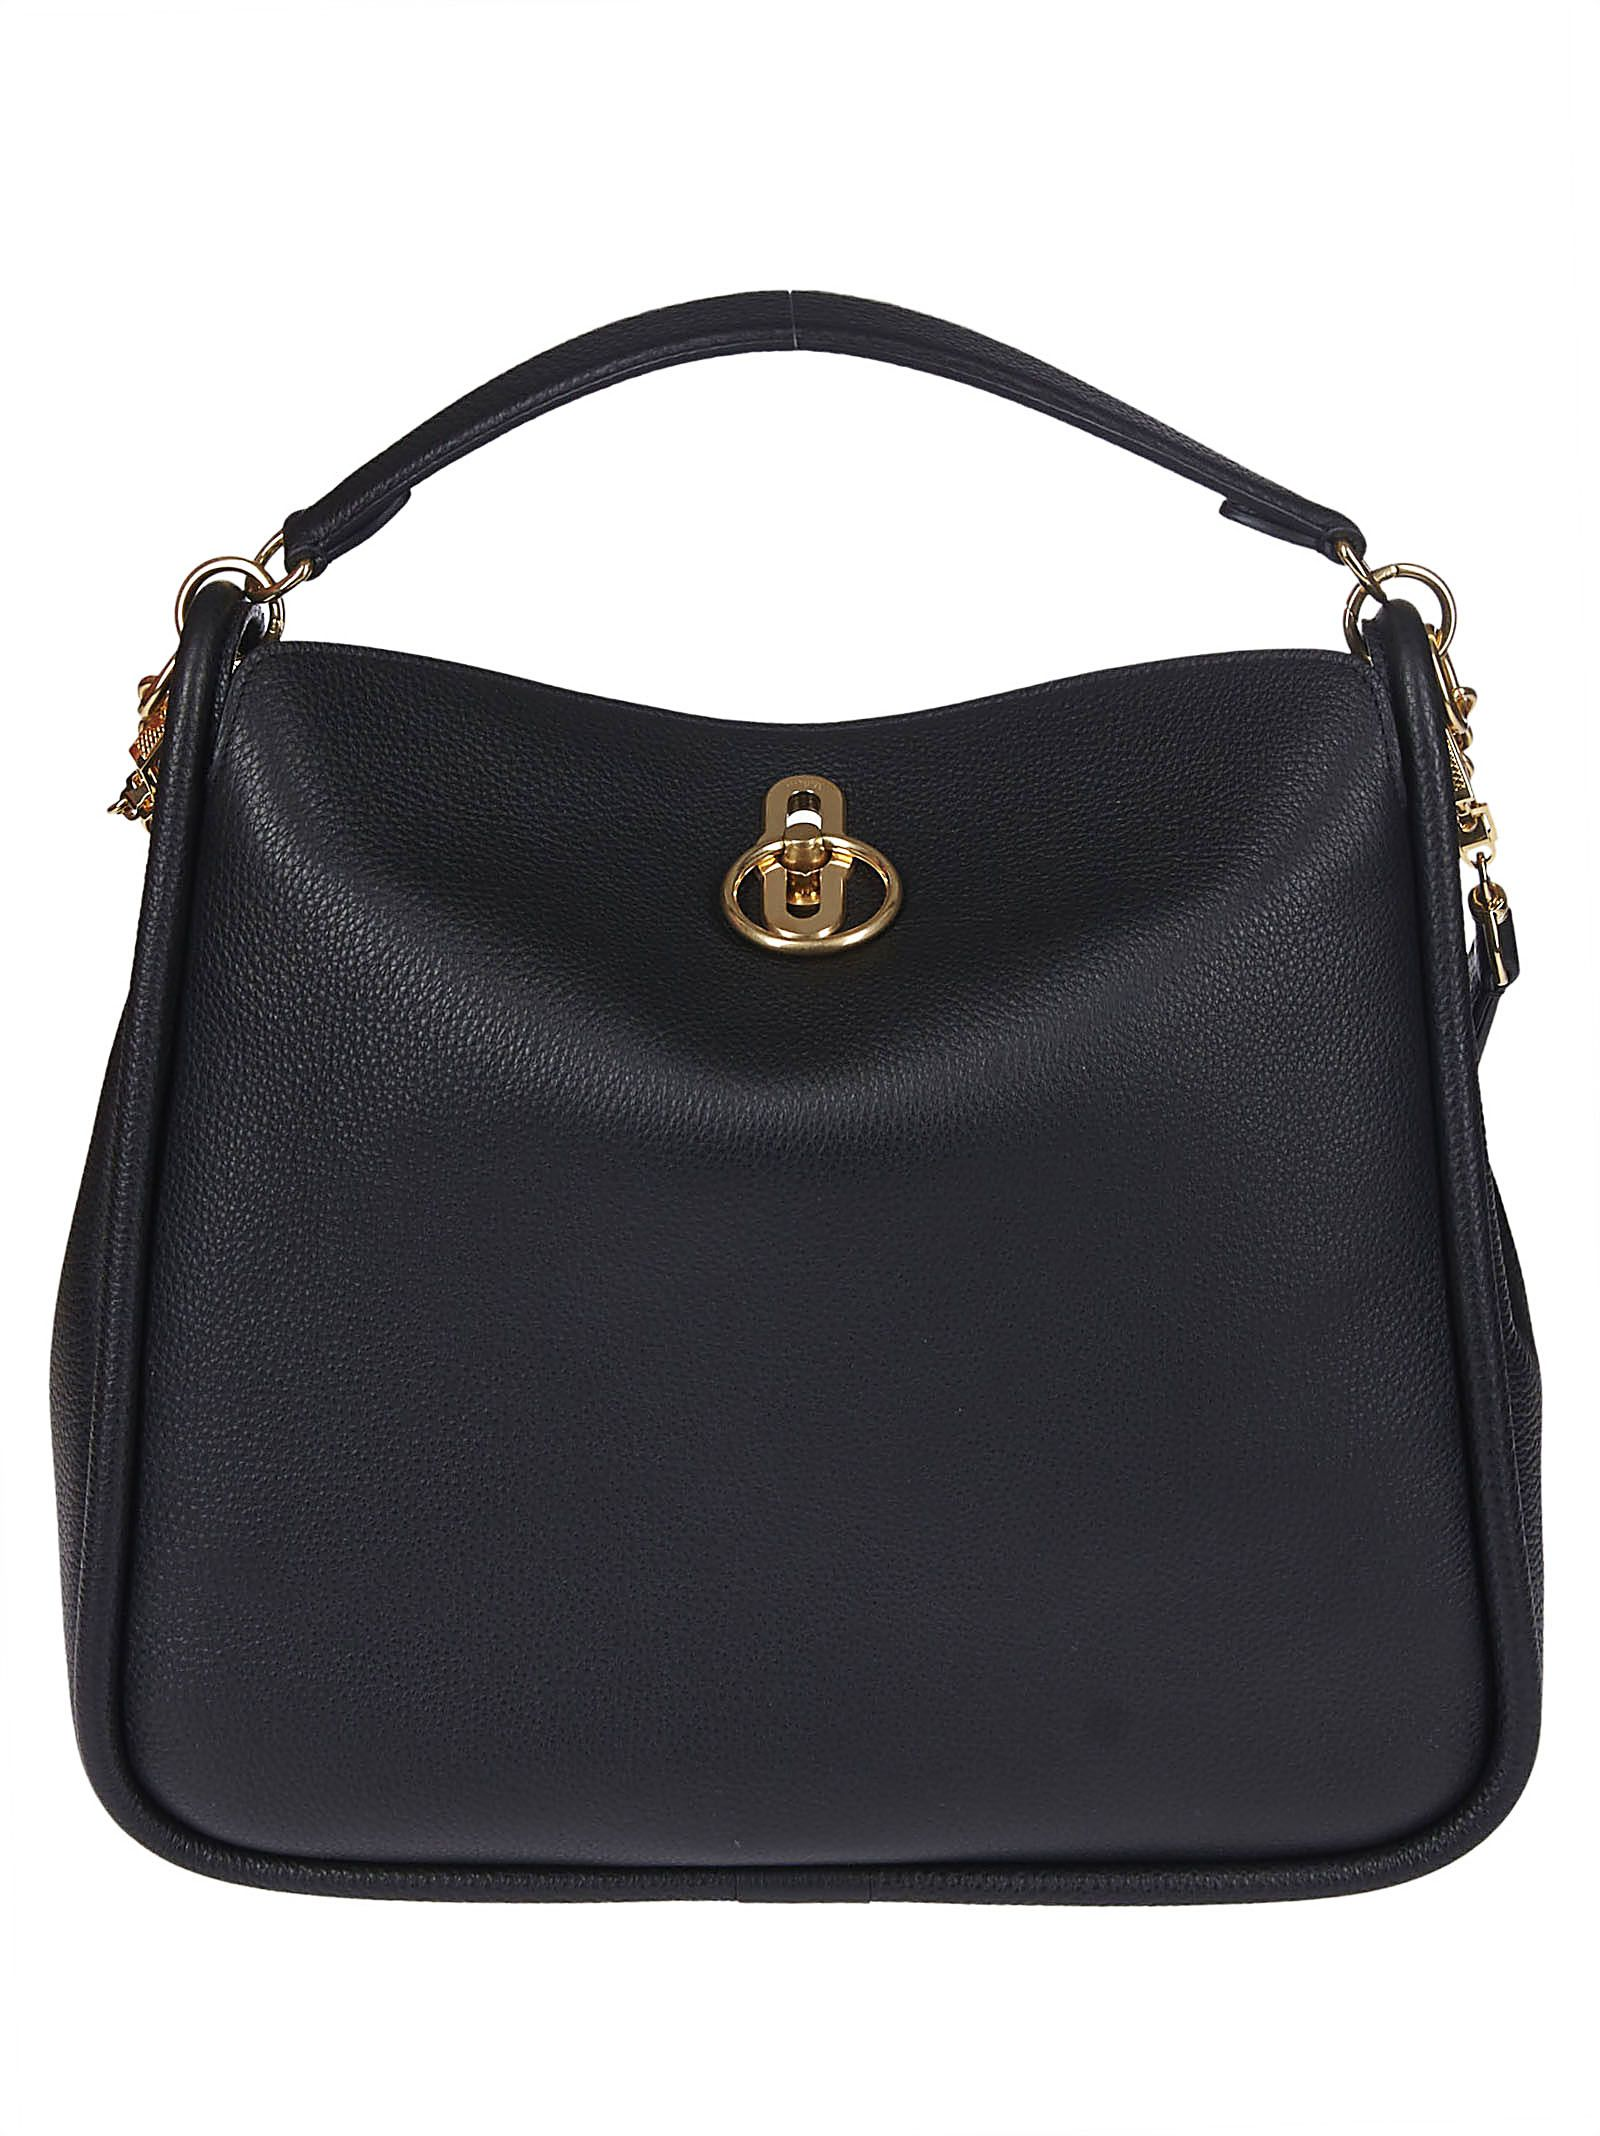 24b72bba3268 Mulberry Mulberry Leighton Tote - Black - 10829644